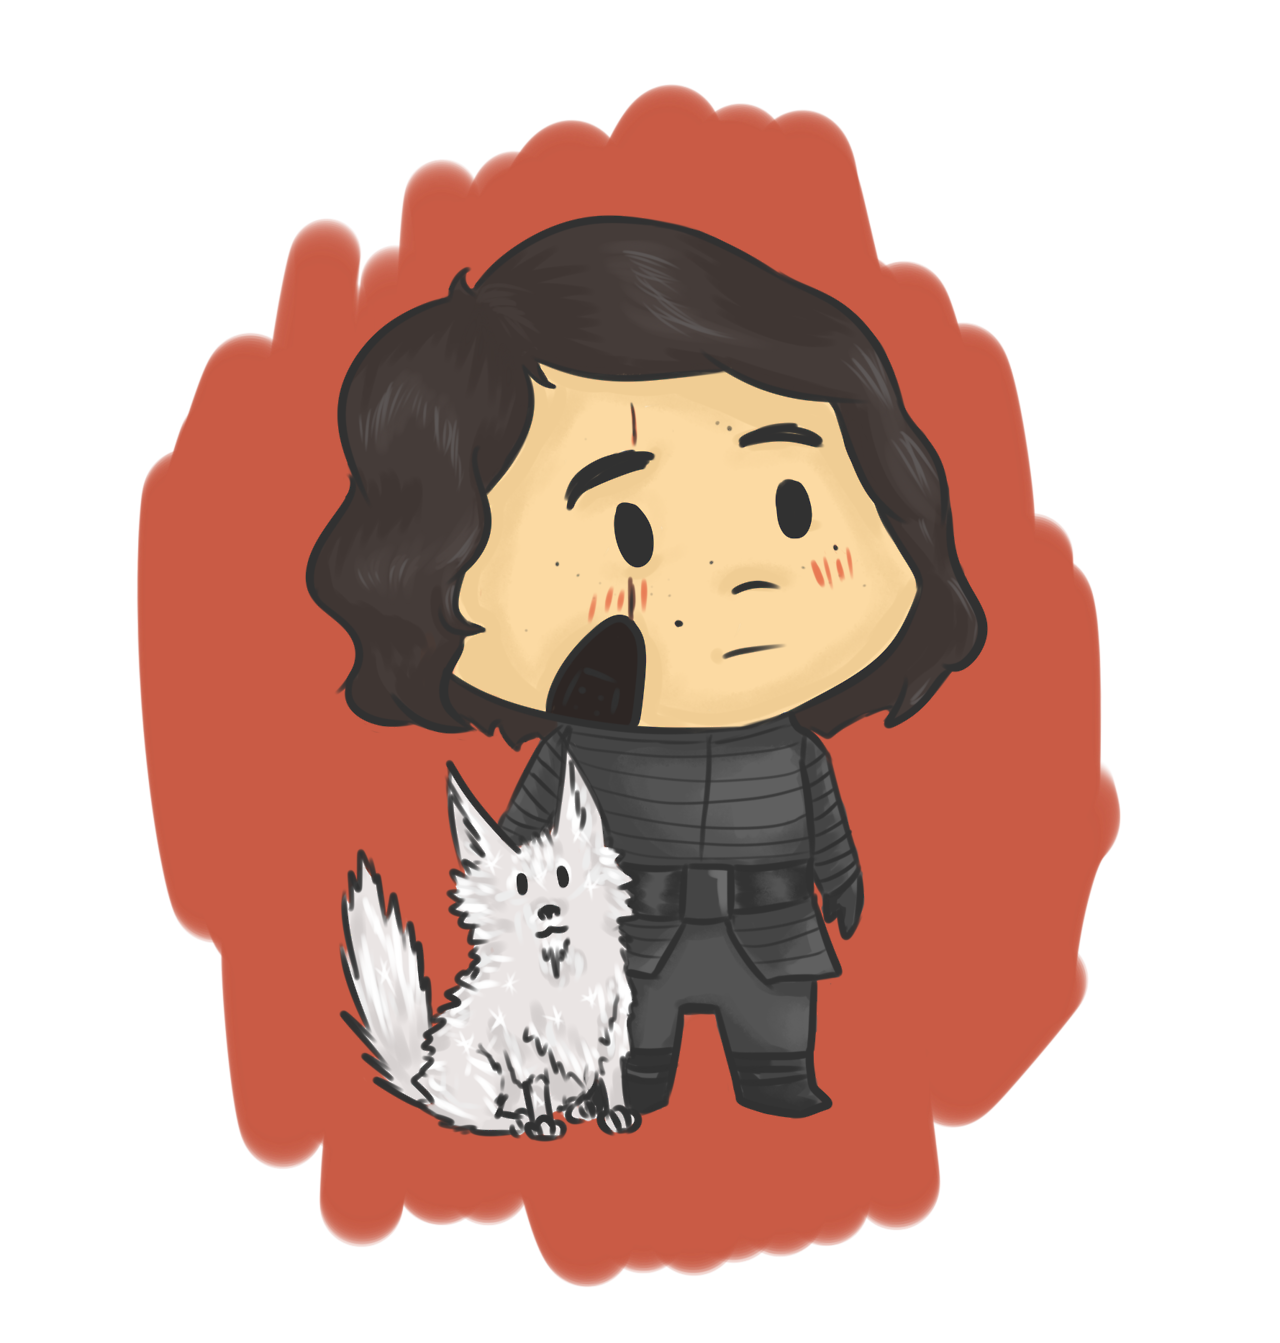 Star wars starbucks clipart banner library library Shamelessly draws kylo ren with all the cute star | Pinterest | Art ... banner library library